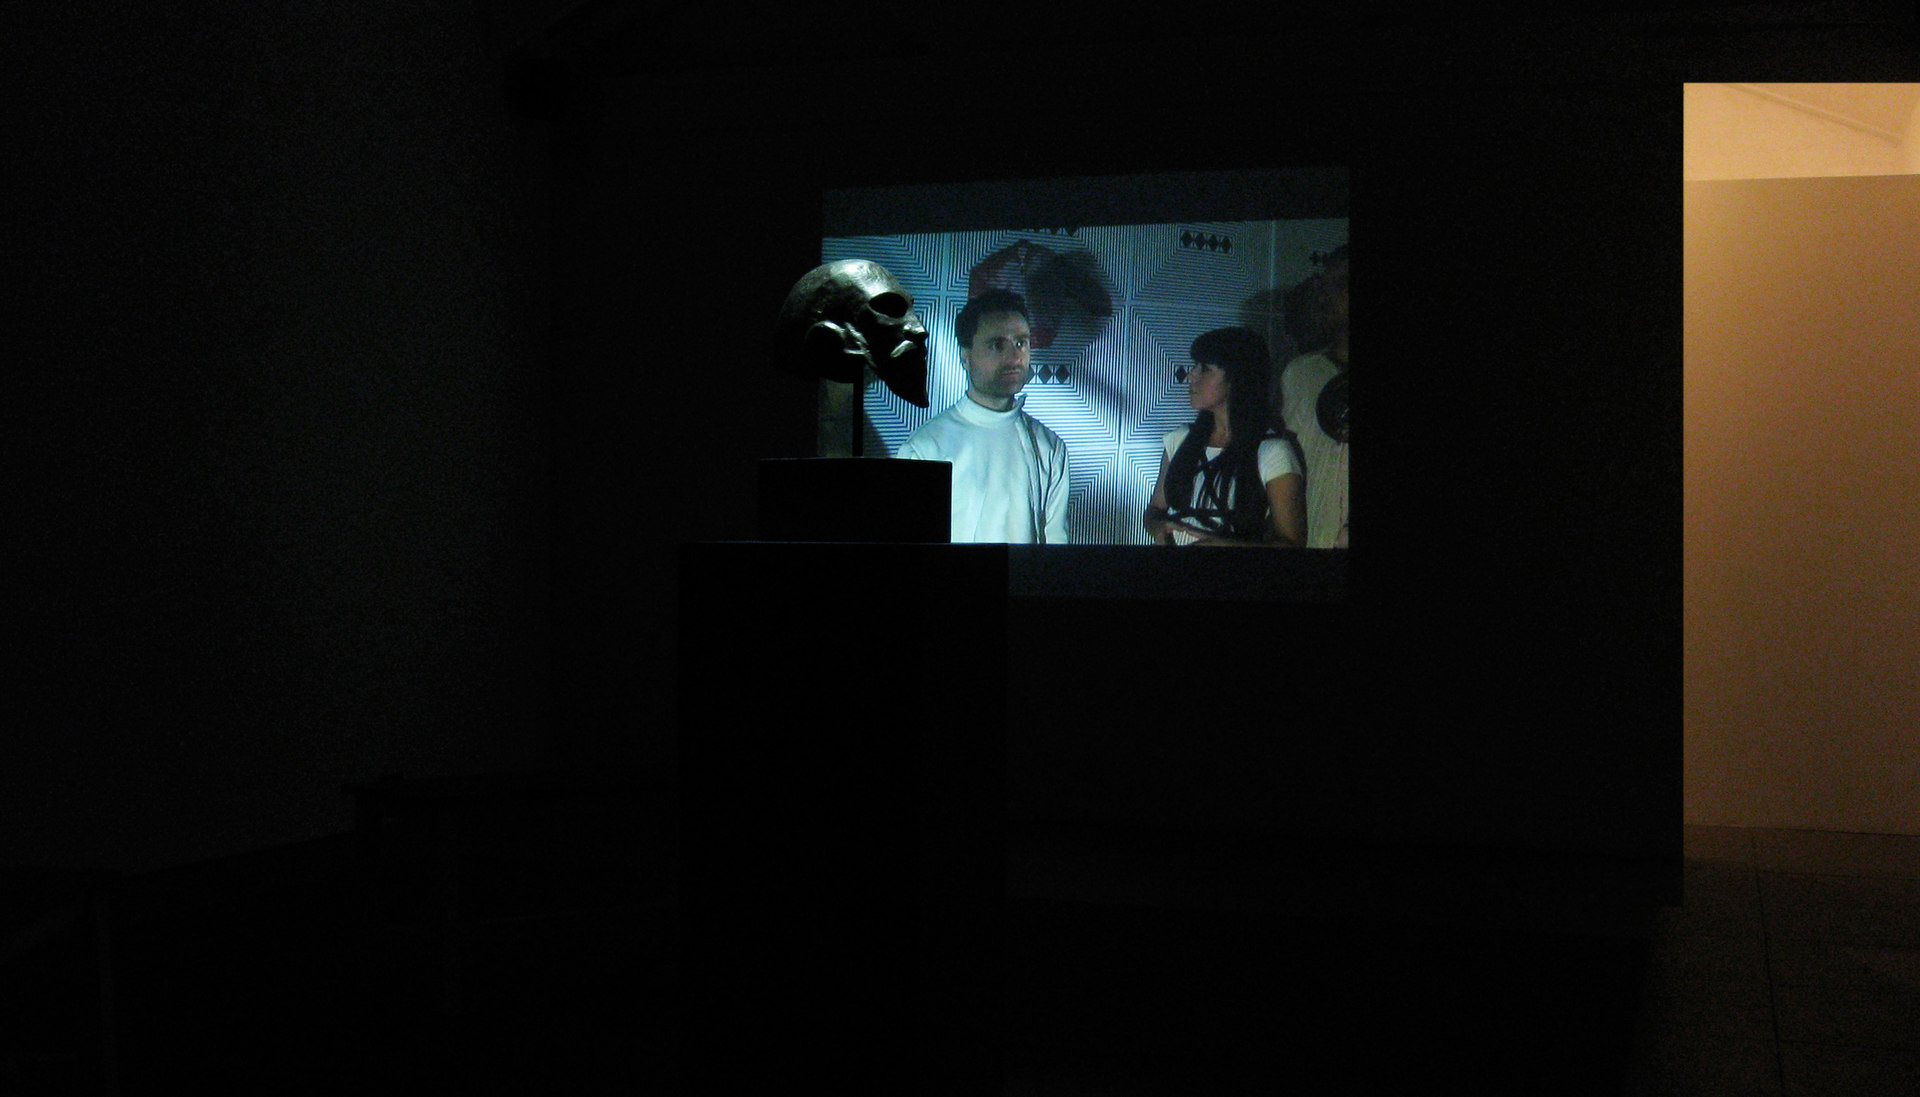 Mark Aerial Waller, 'Secret' still from Resistance Domination Secret, 2010, Cell Project Space